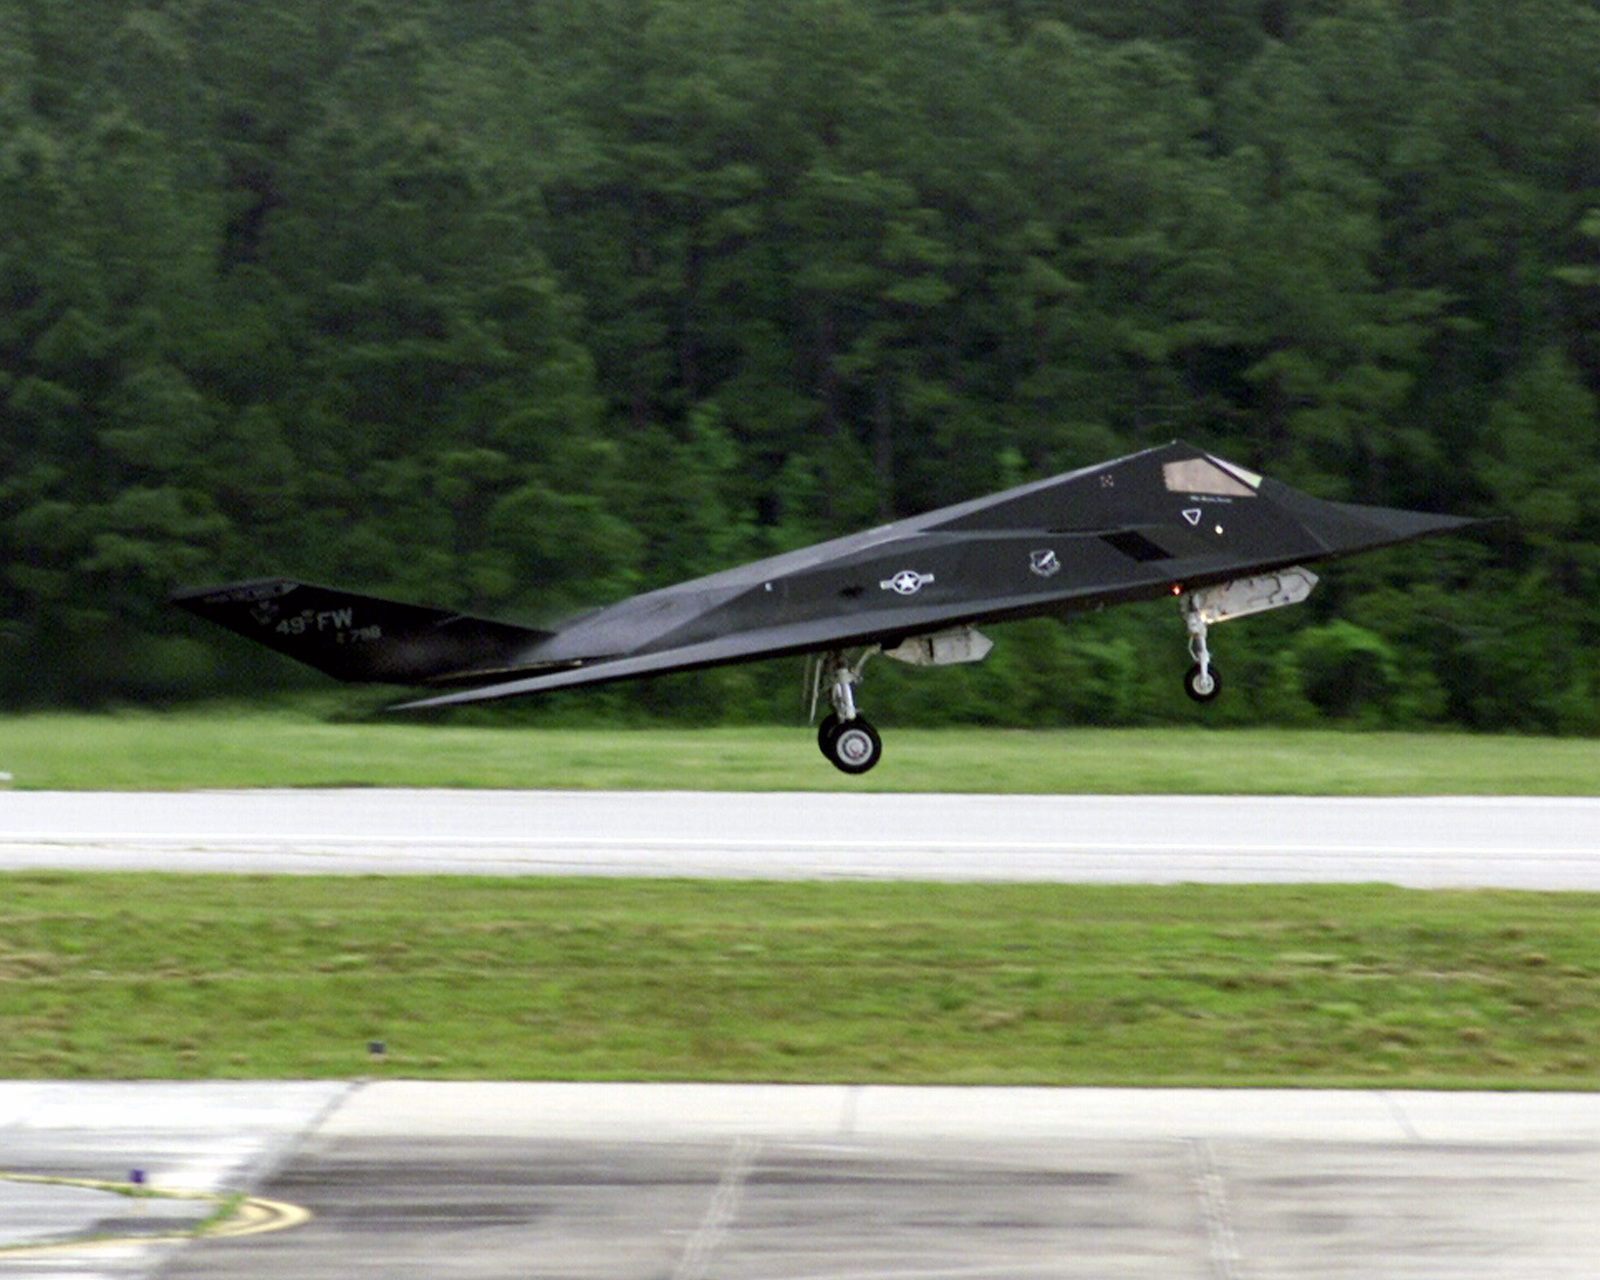 A US Air Force (USAF) F-117A Stealth Fighter takes off during an air show at Marine Corps Air Station (MCAS), Cherry Point, North Carolina (NC)